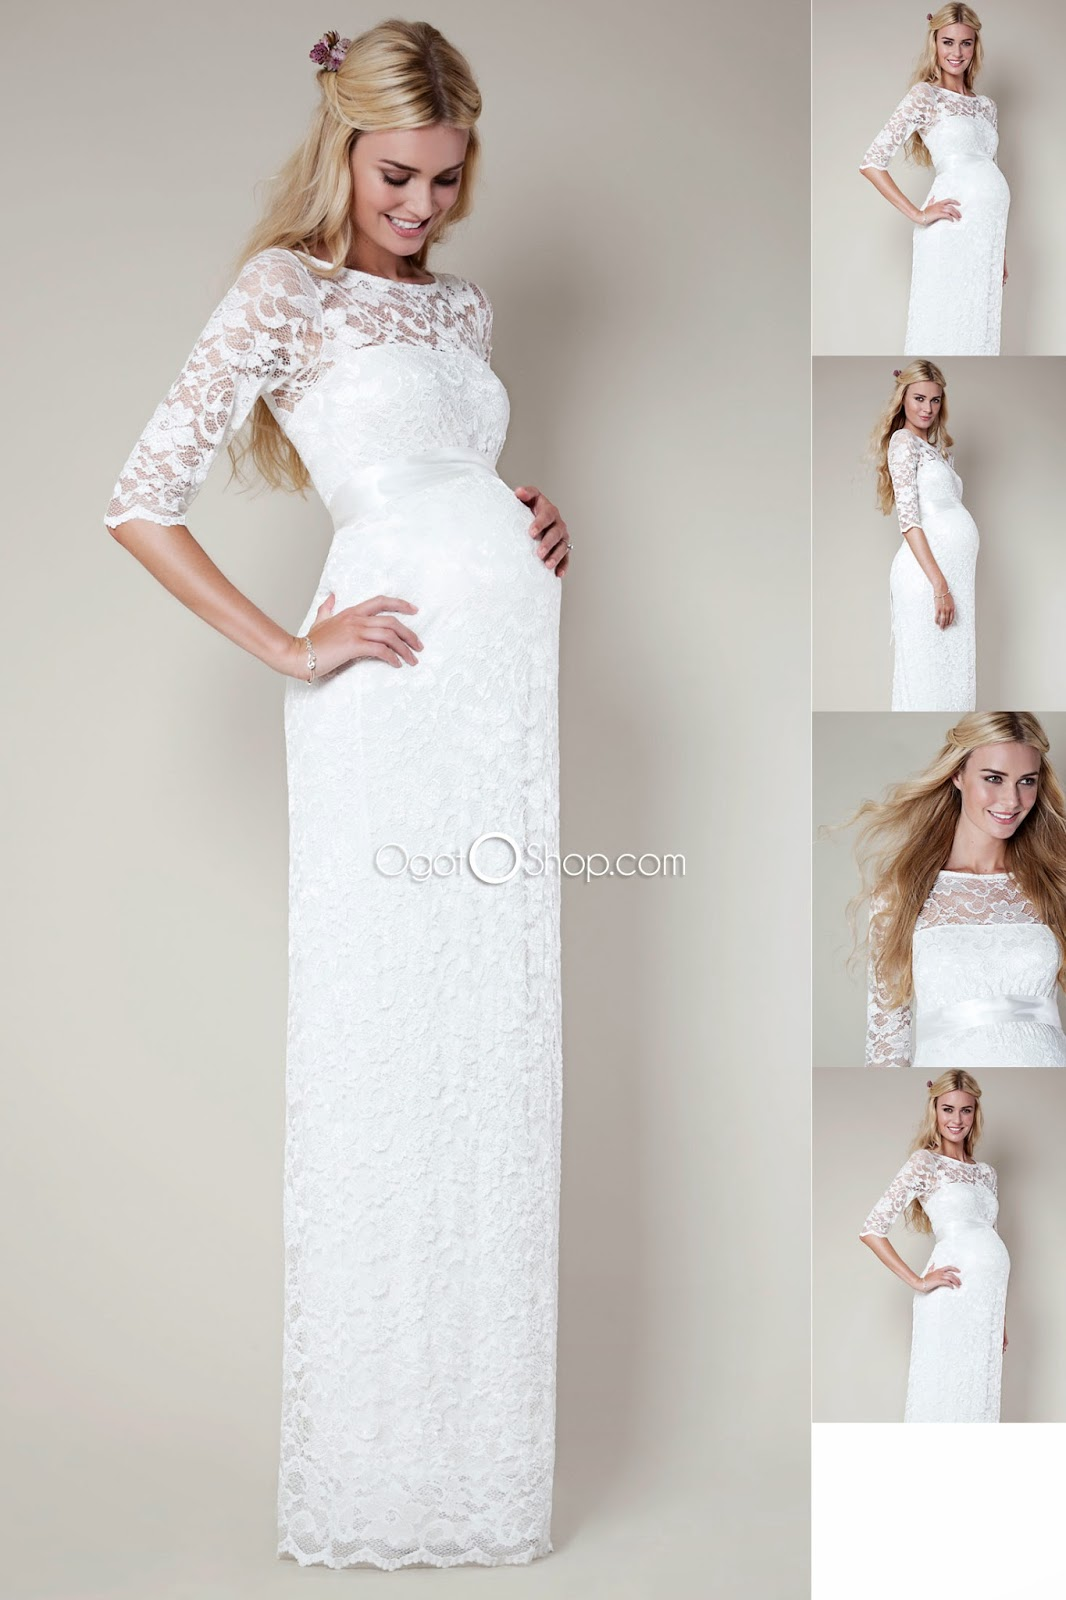 Wedding Dress With Half Sleeves Elegant White With Lace Floor Length